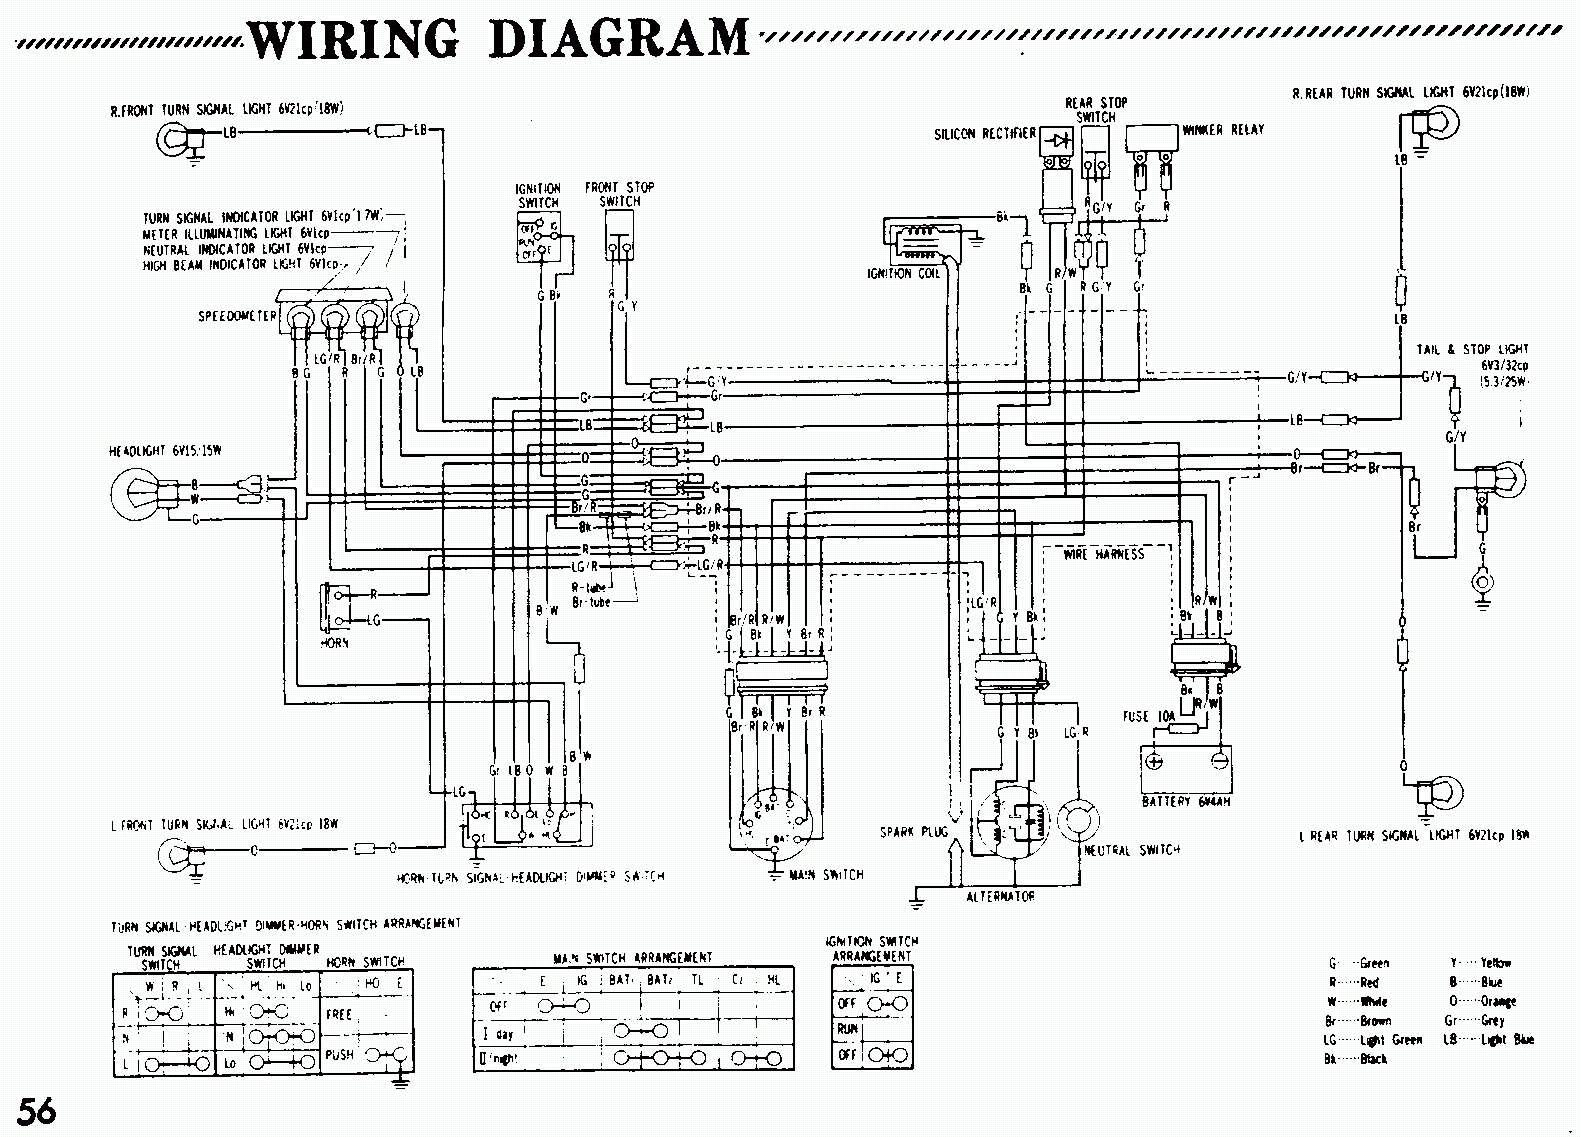 wiring diagram for 2009 honda accord free download wiring diagrams for a honda 70 free download tbolt usa tech database - tbolt usa, llc #3